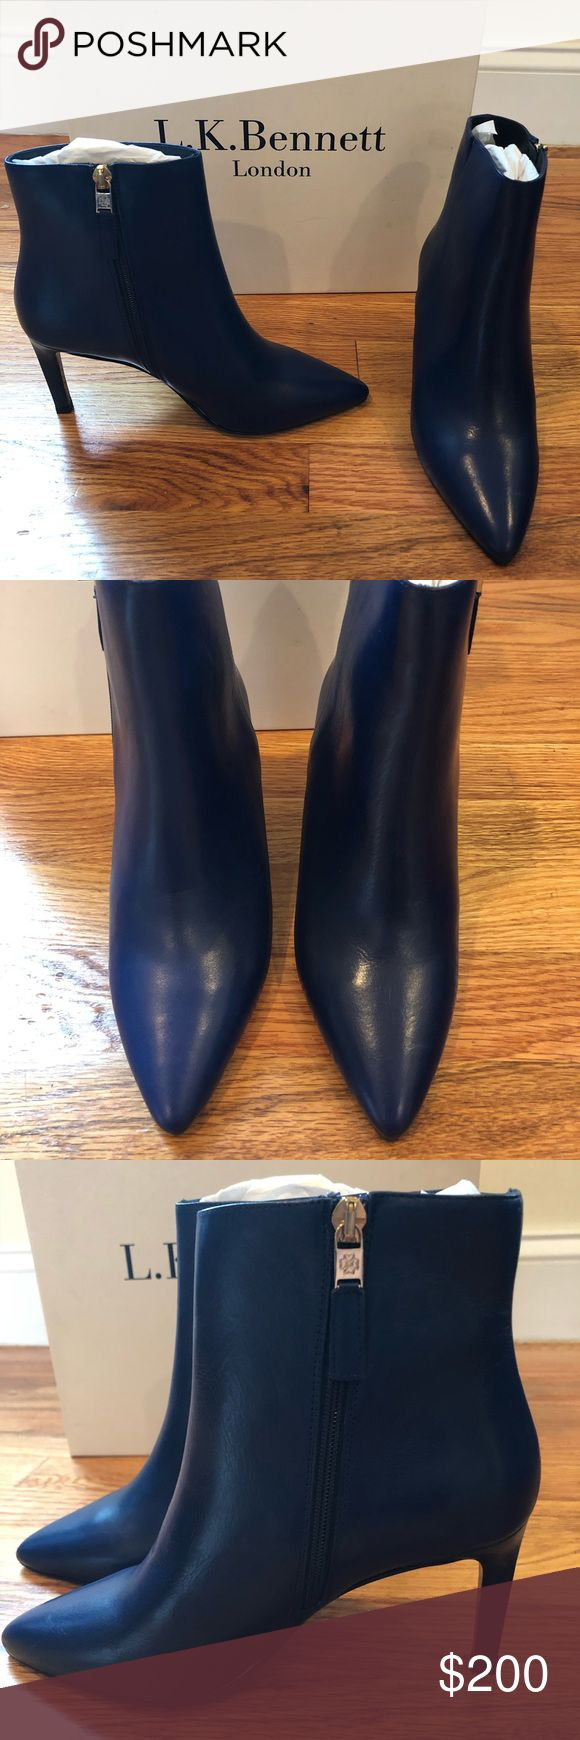 BNIB L.K. Bennett dark blue leather Rods booties! Amazing!! Dark blue leather Rosa booties from LK Bennett. Beautiful leather 😍 Sz 35 best correlates with a US 5. Never worn and comes with box. Perfect holiday present! LK Bennett Shoes Ankle Boots & Booties